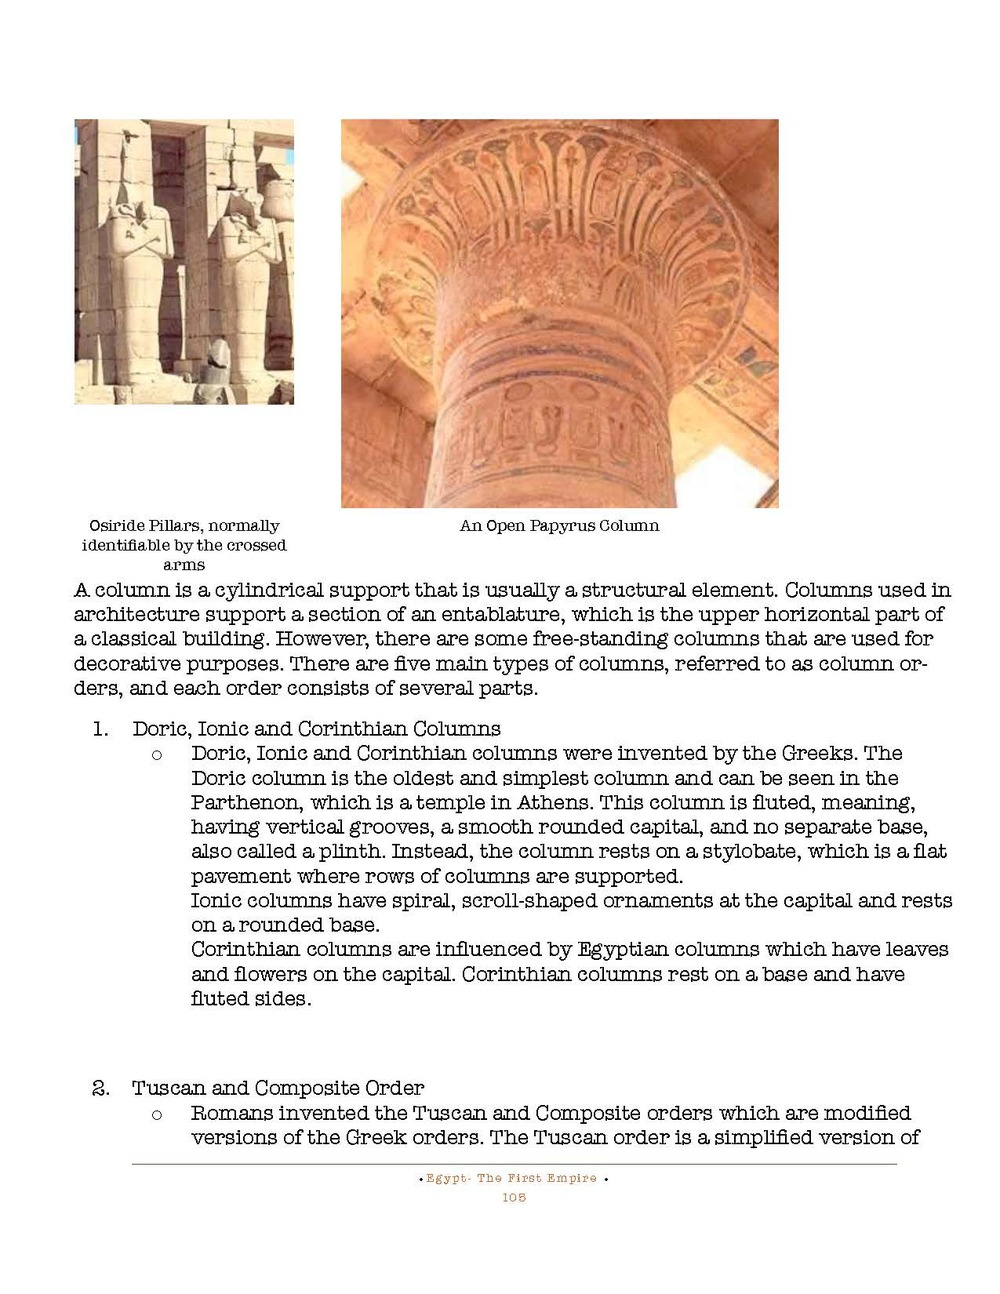 HOCE- Egypt  (First Empire) Notes_Page_105.jpg